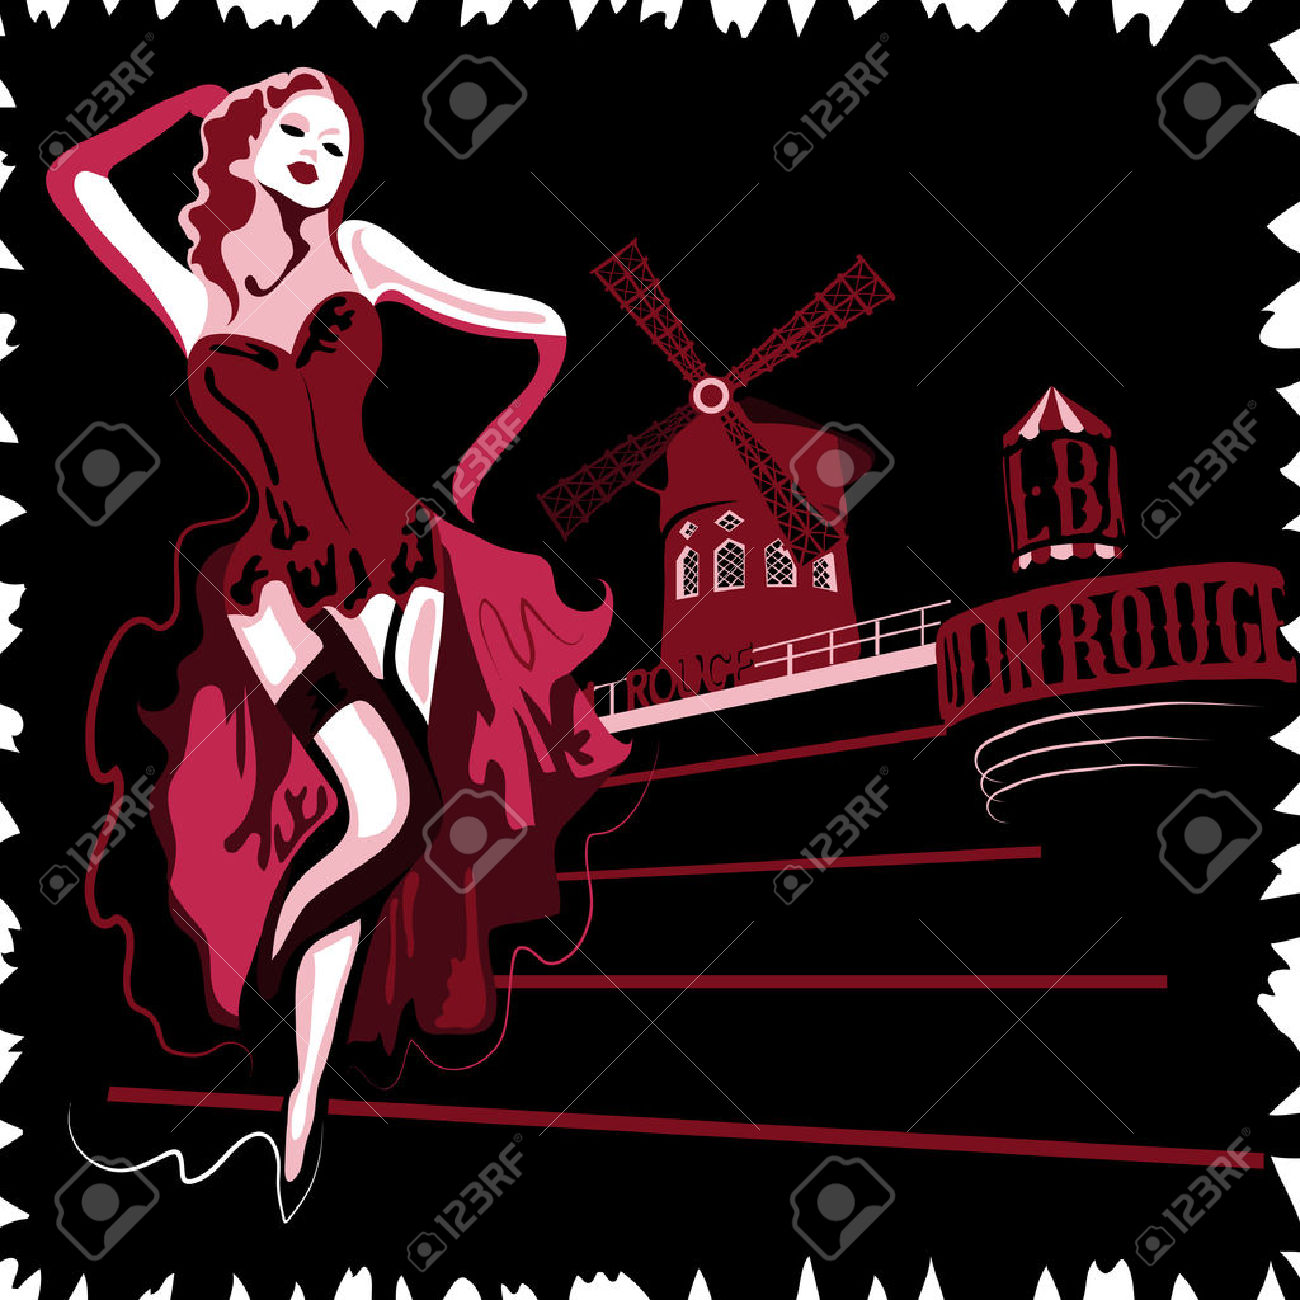 530 Moulin Rouge Stock Vector Illustration And Royalty Free Moulin.